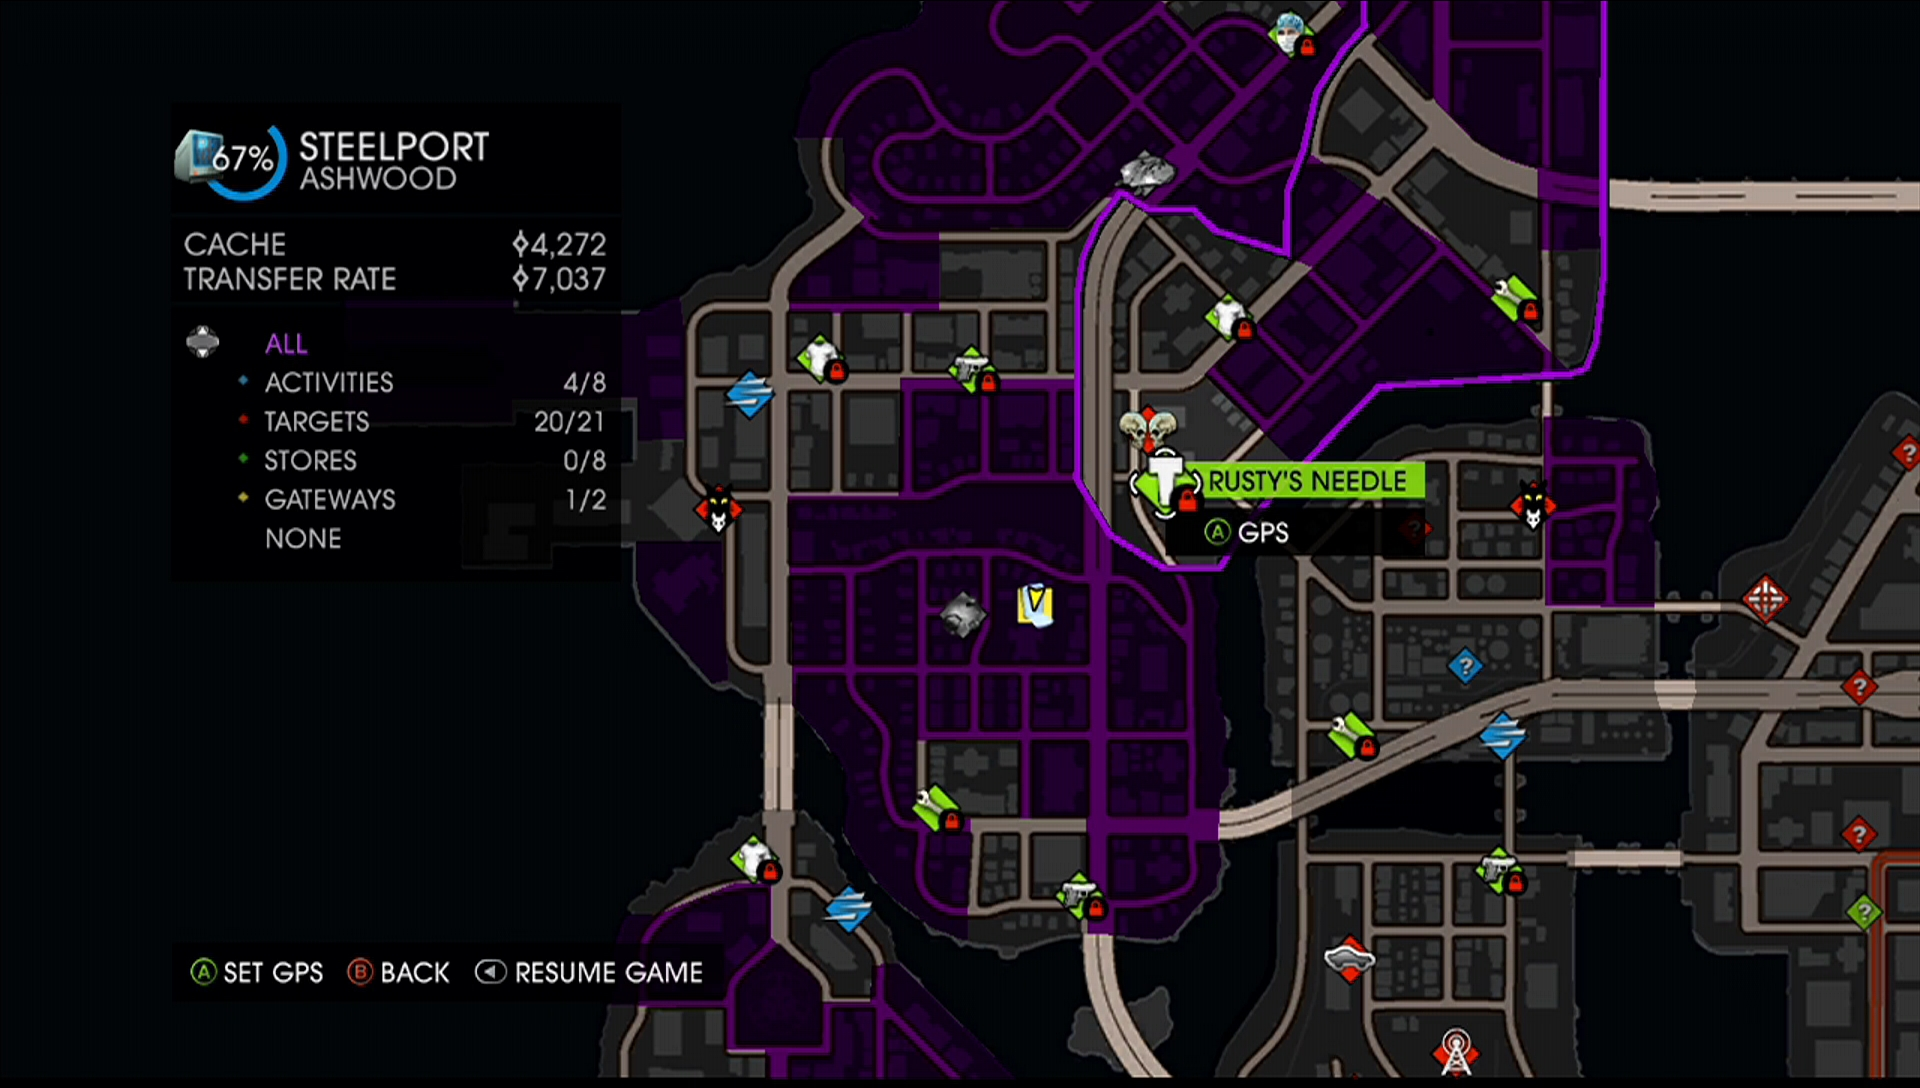 Saints row 4 nackt cheats fucked thumbs